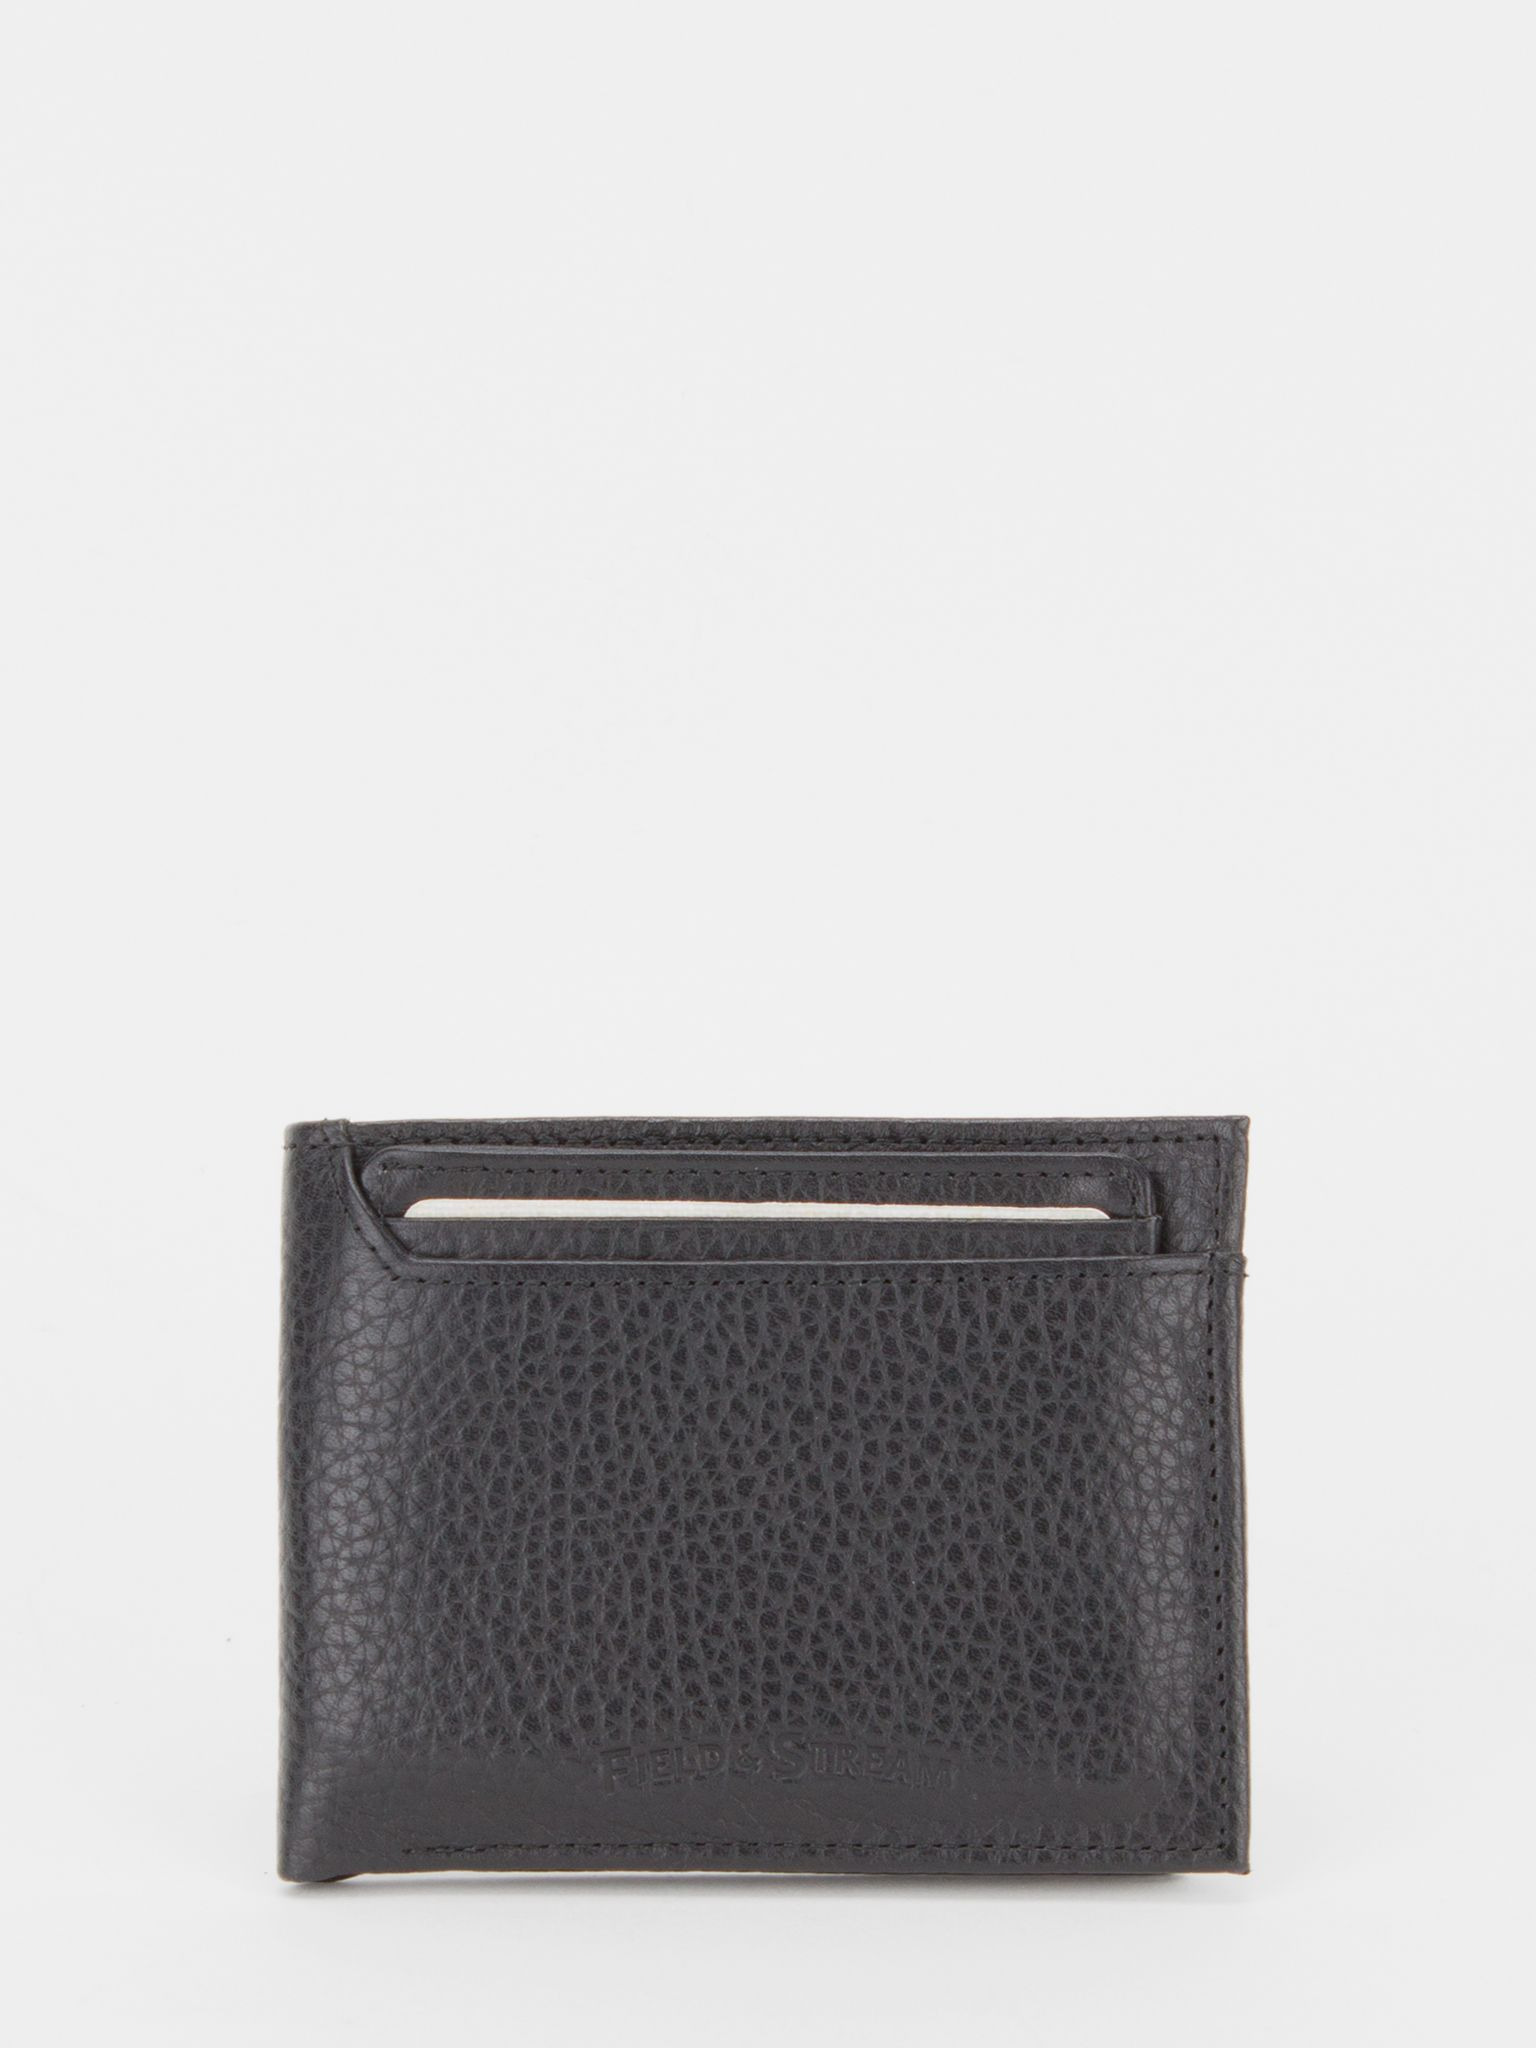 Mens Wallet with Id Window On Outside Lovely Newcastle Rfid Blocking Leather Id Wallet Black